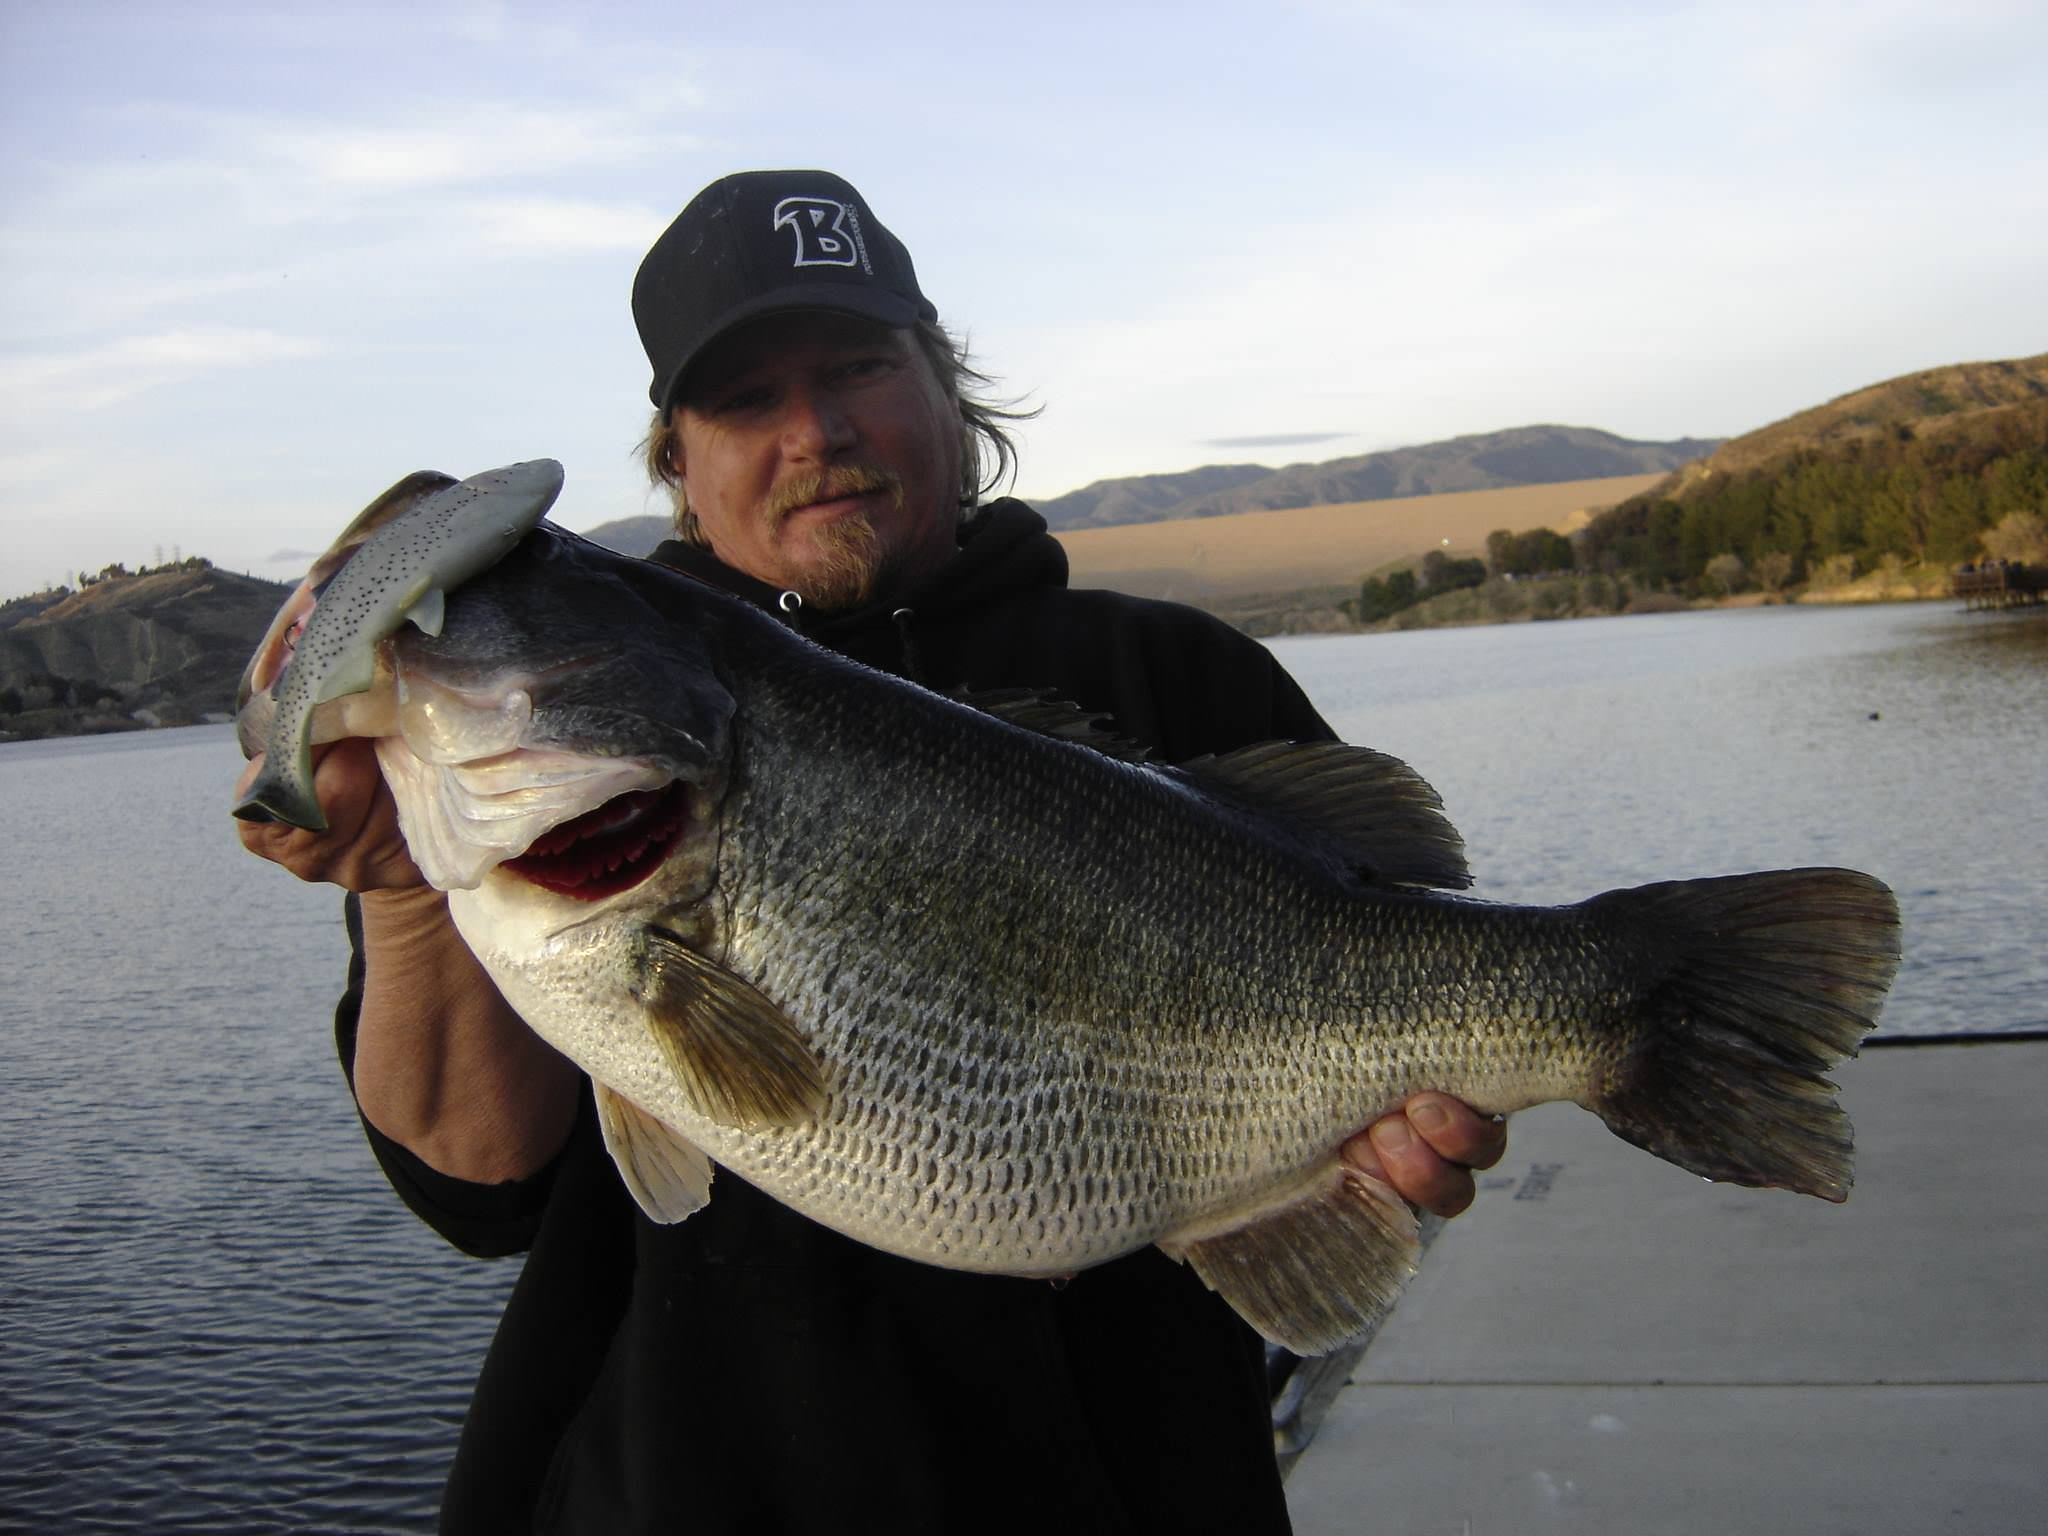 Big bass photos bassaholics blog for Bass fish images